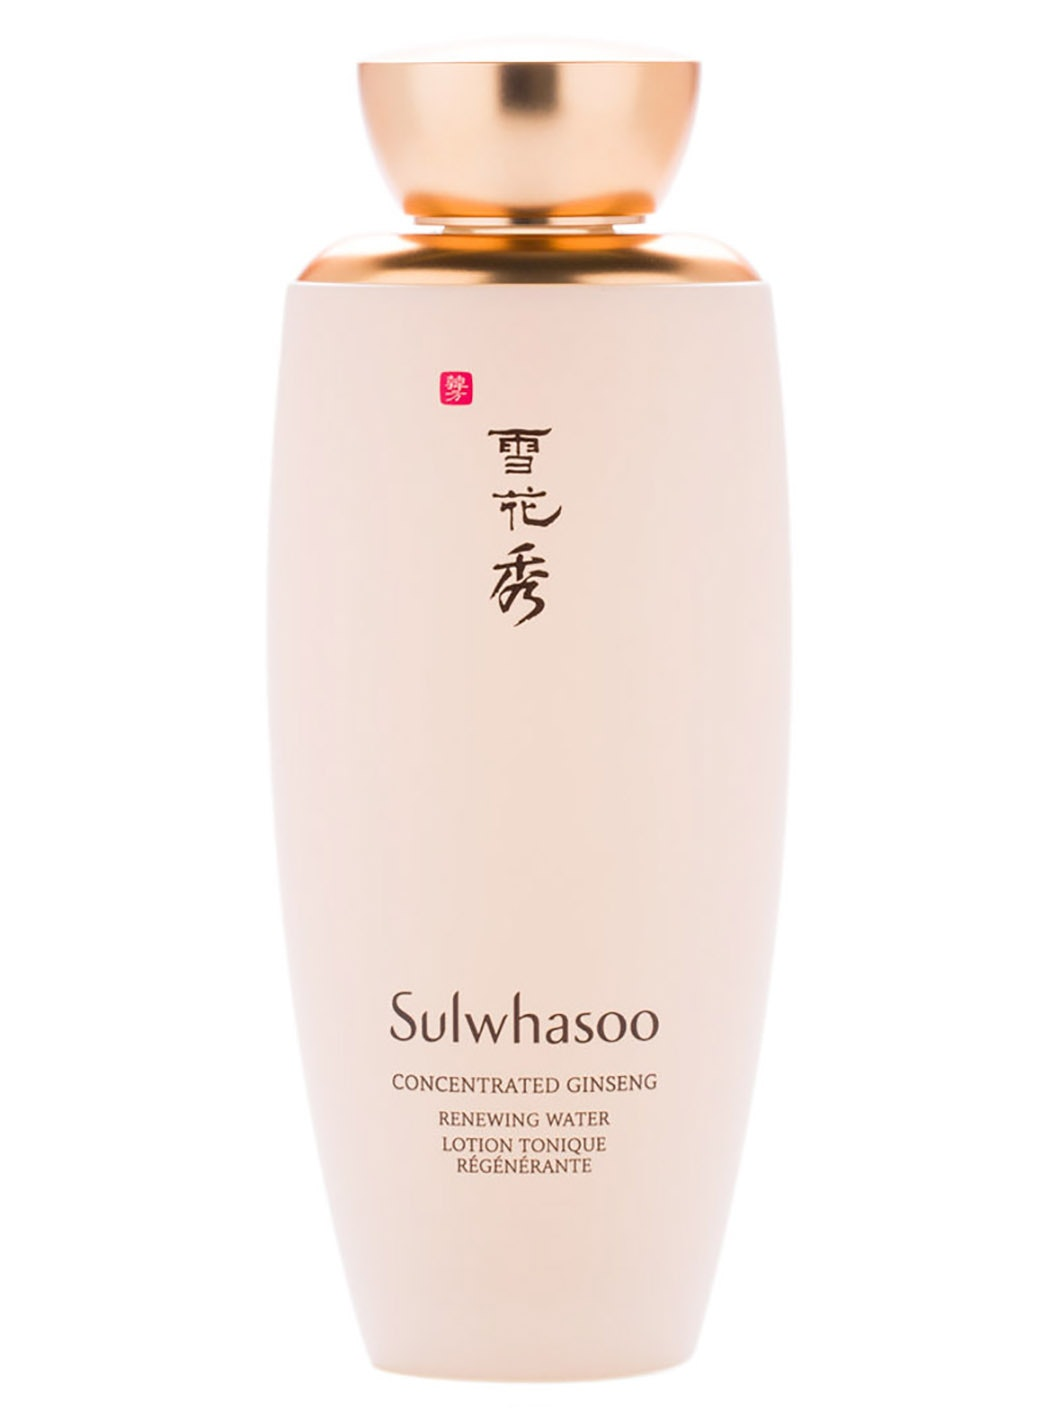 Sulwhasoo Concentrated Ginseng Renewing Water